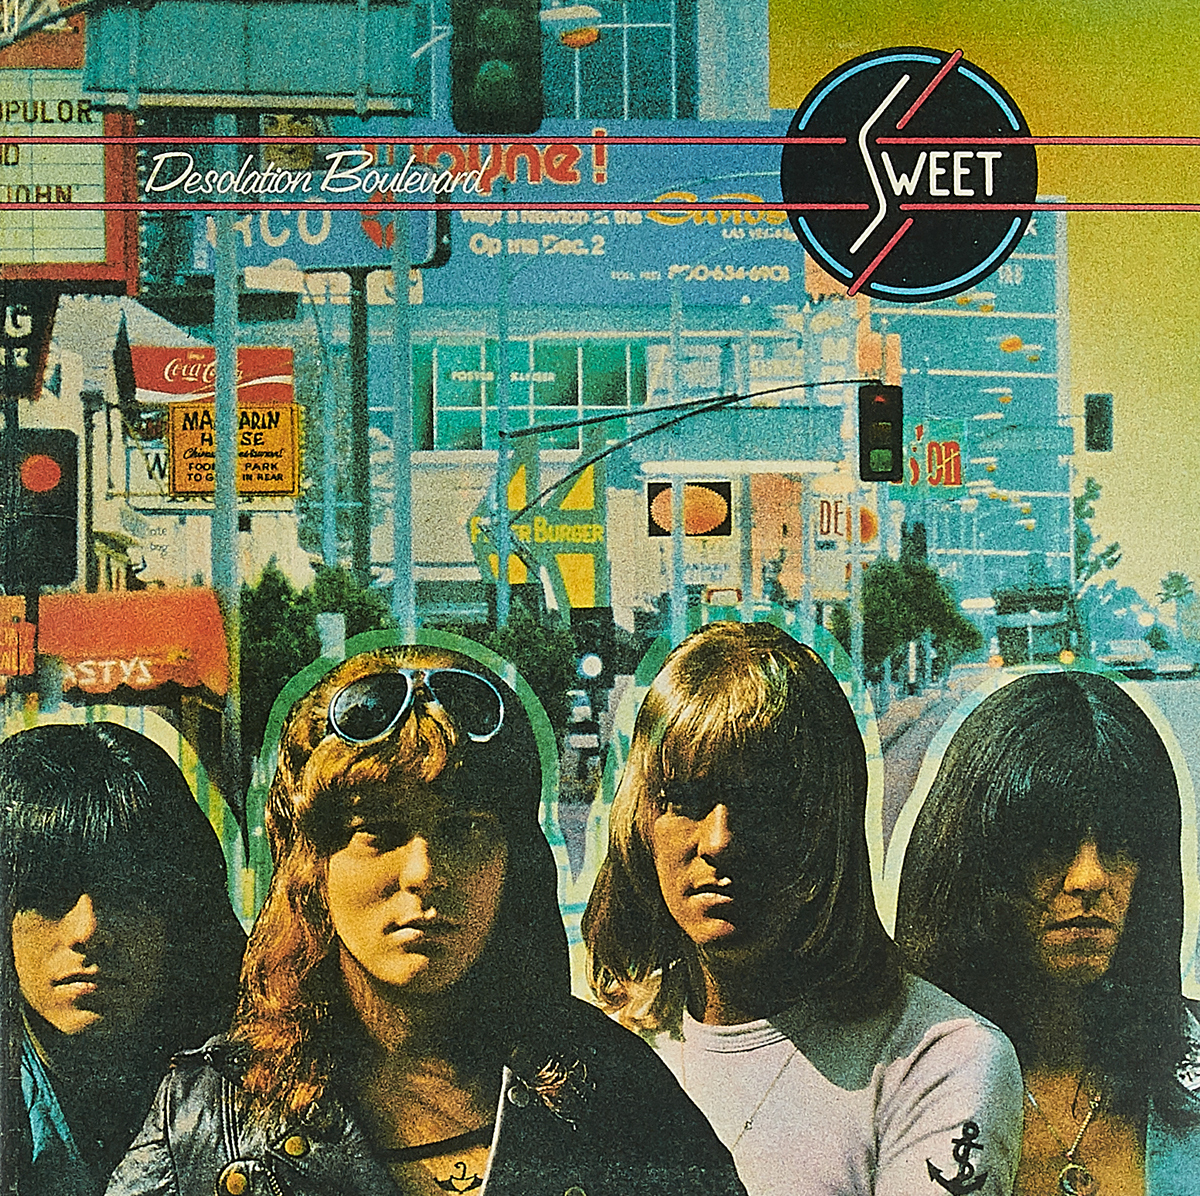 Sweet. Desolation Boulevard (New Vinyl Edition) (LP)